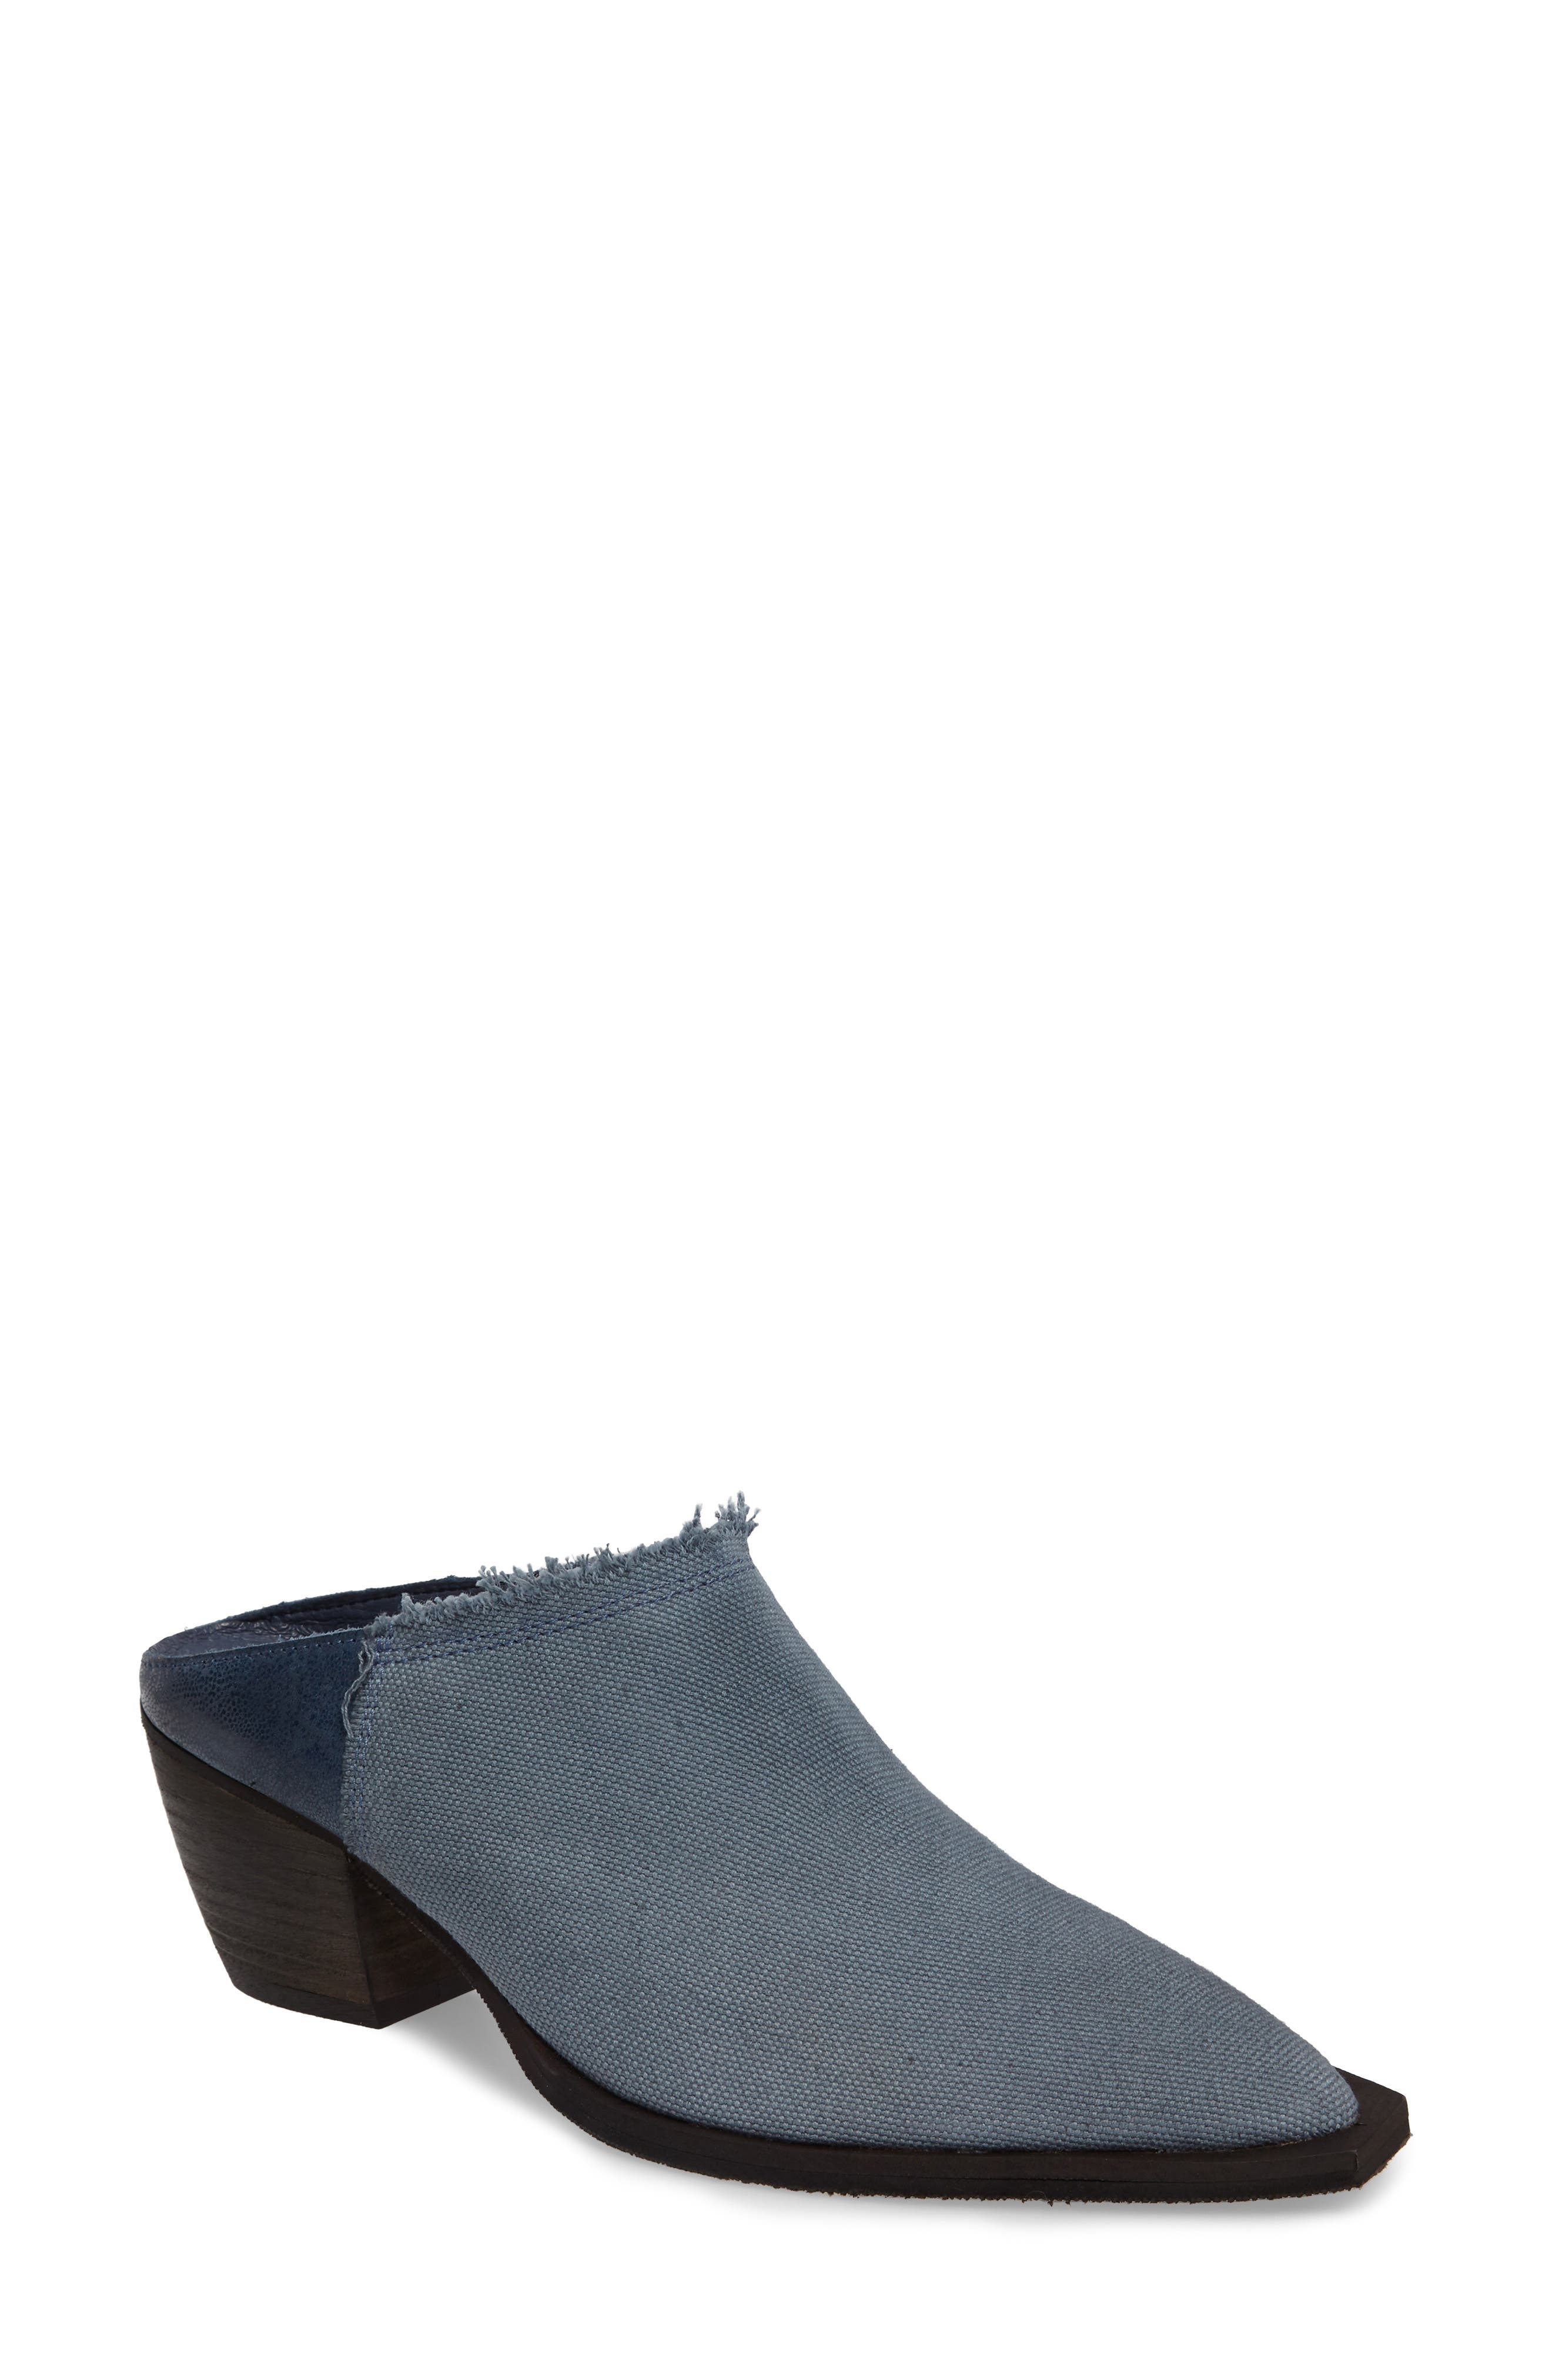 Free People Wild Things Mule (Women)